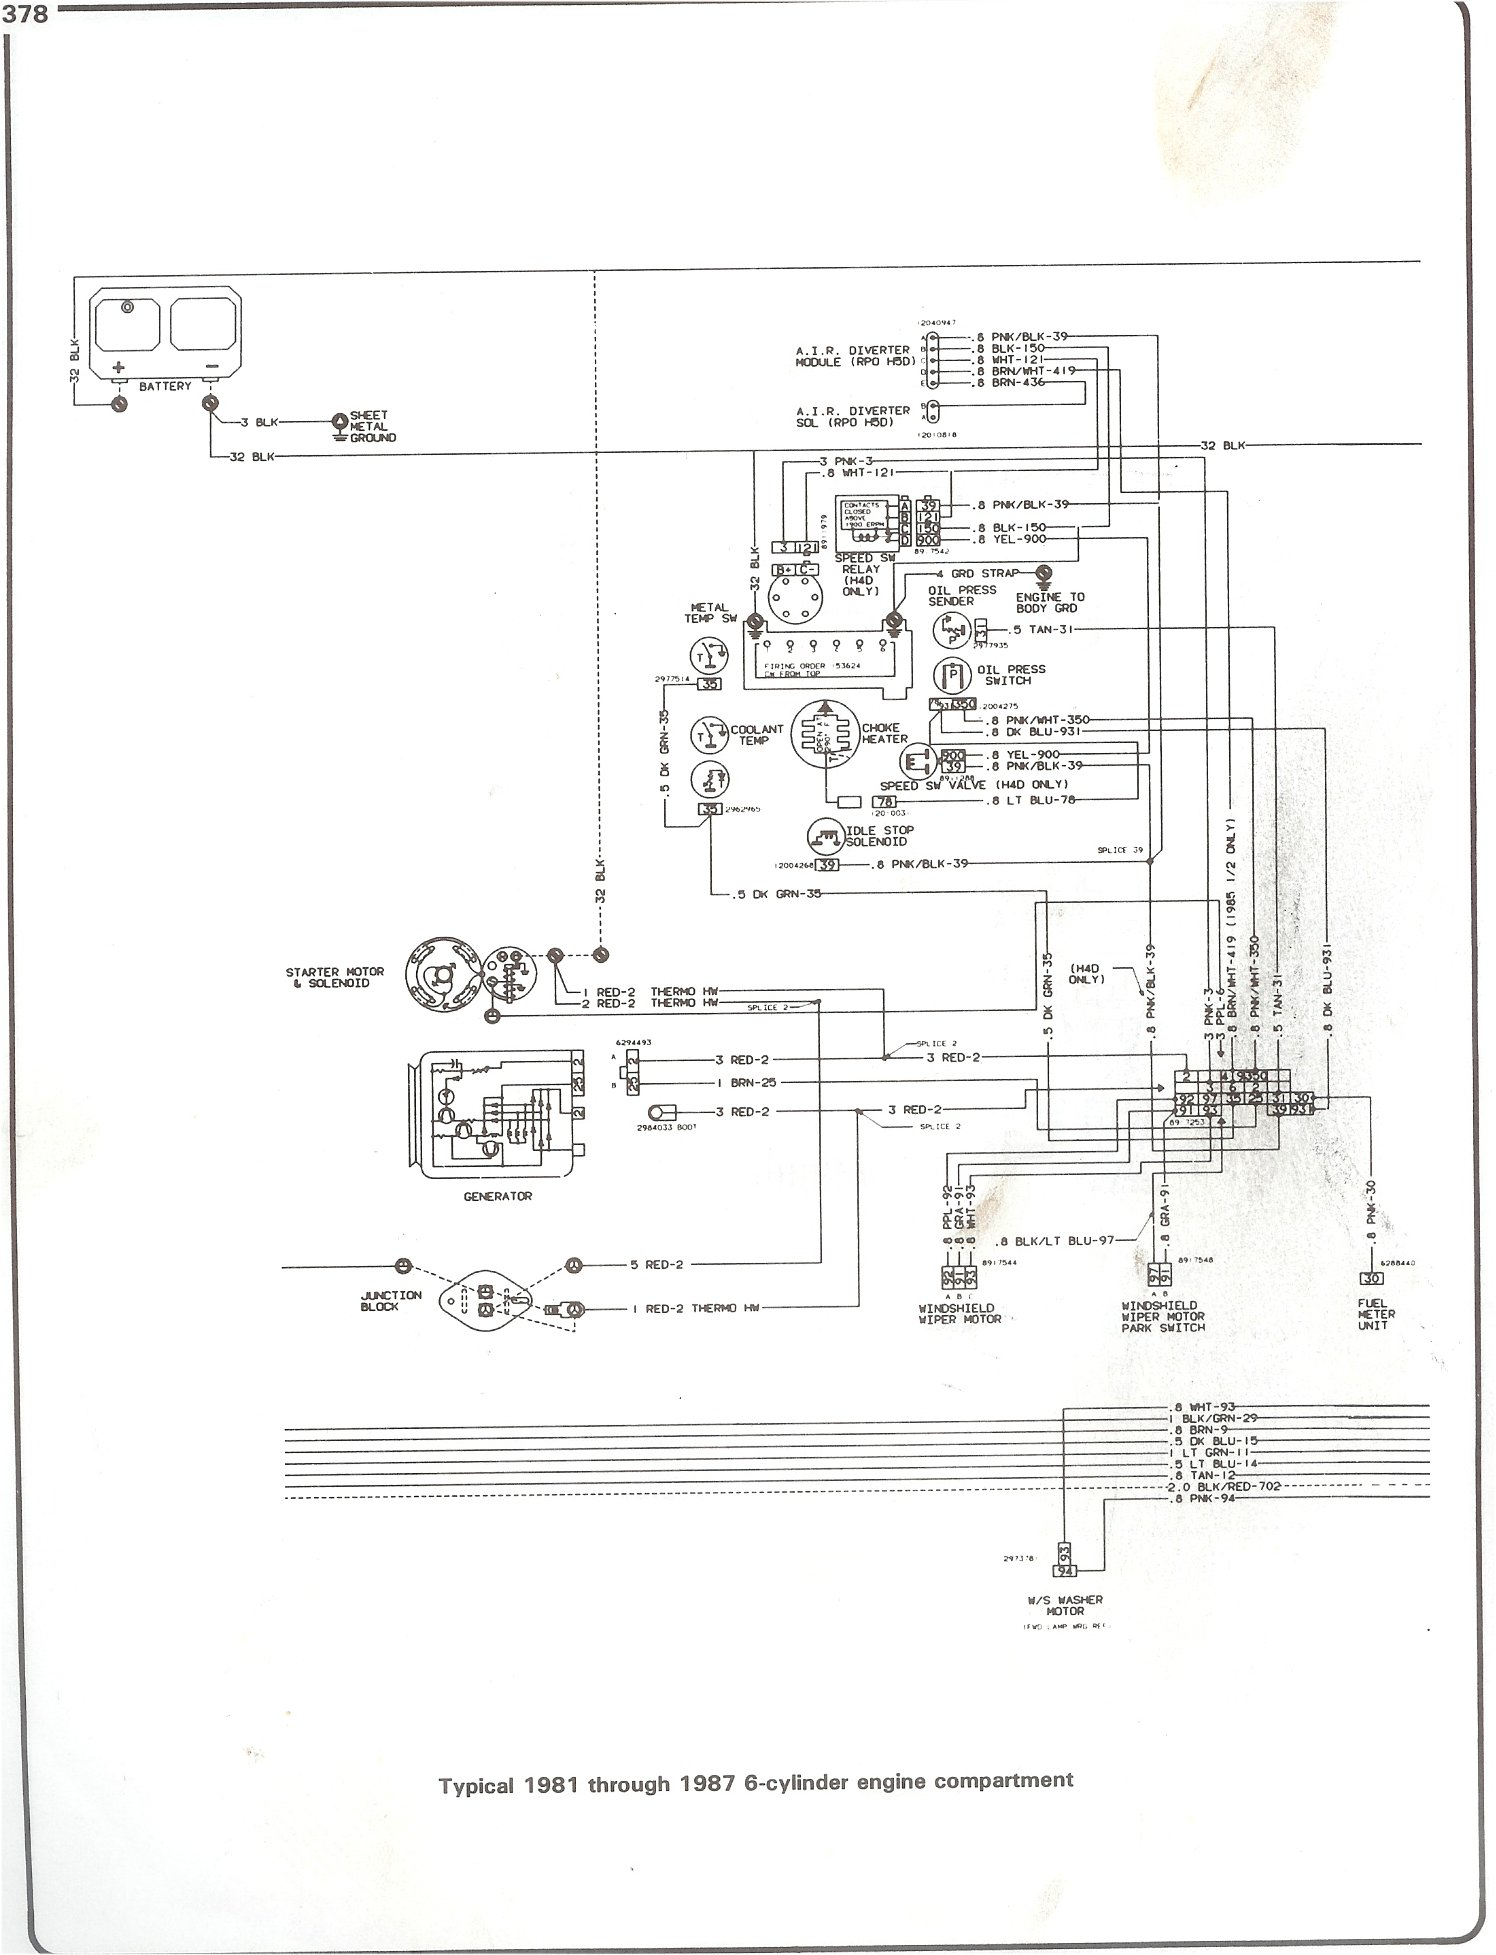 hight resolution of complete 73 87 wiring diagrams 1987 firebird wiring diagram 81 87 i6 engine compartment